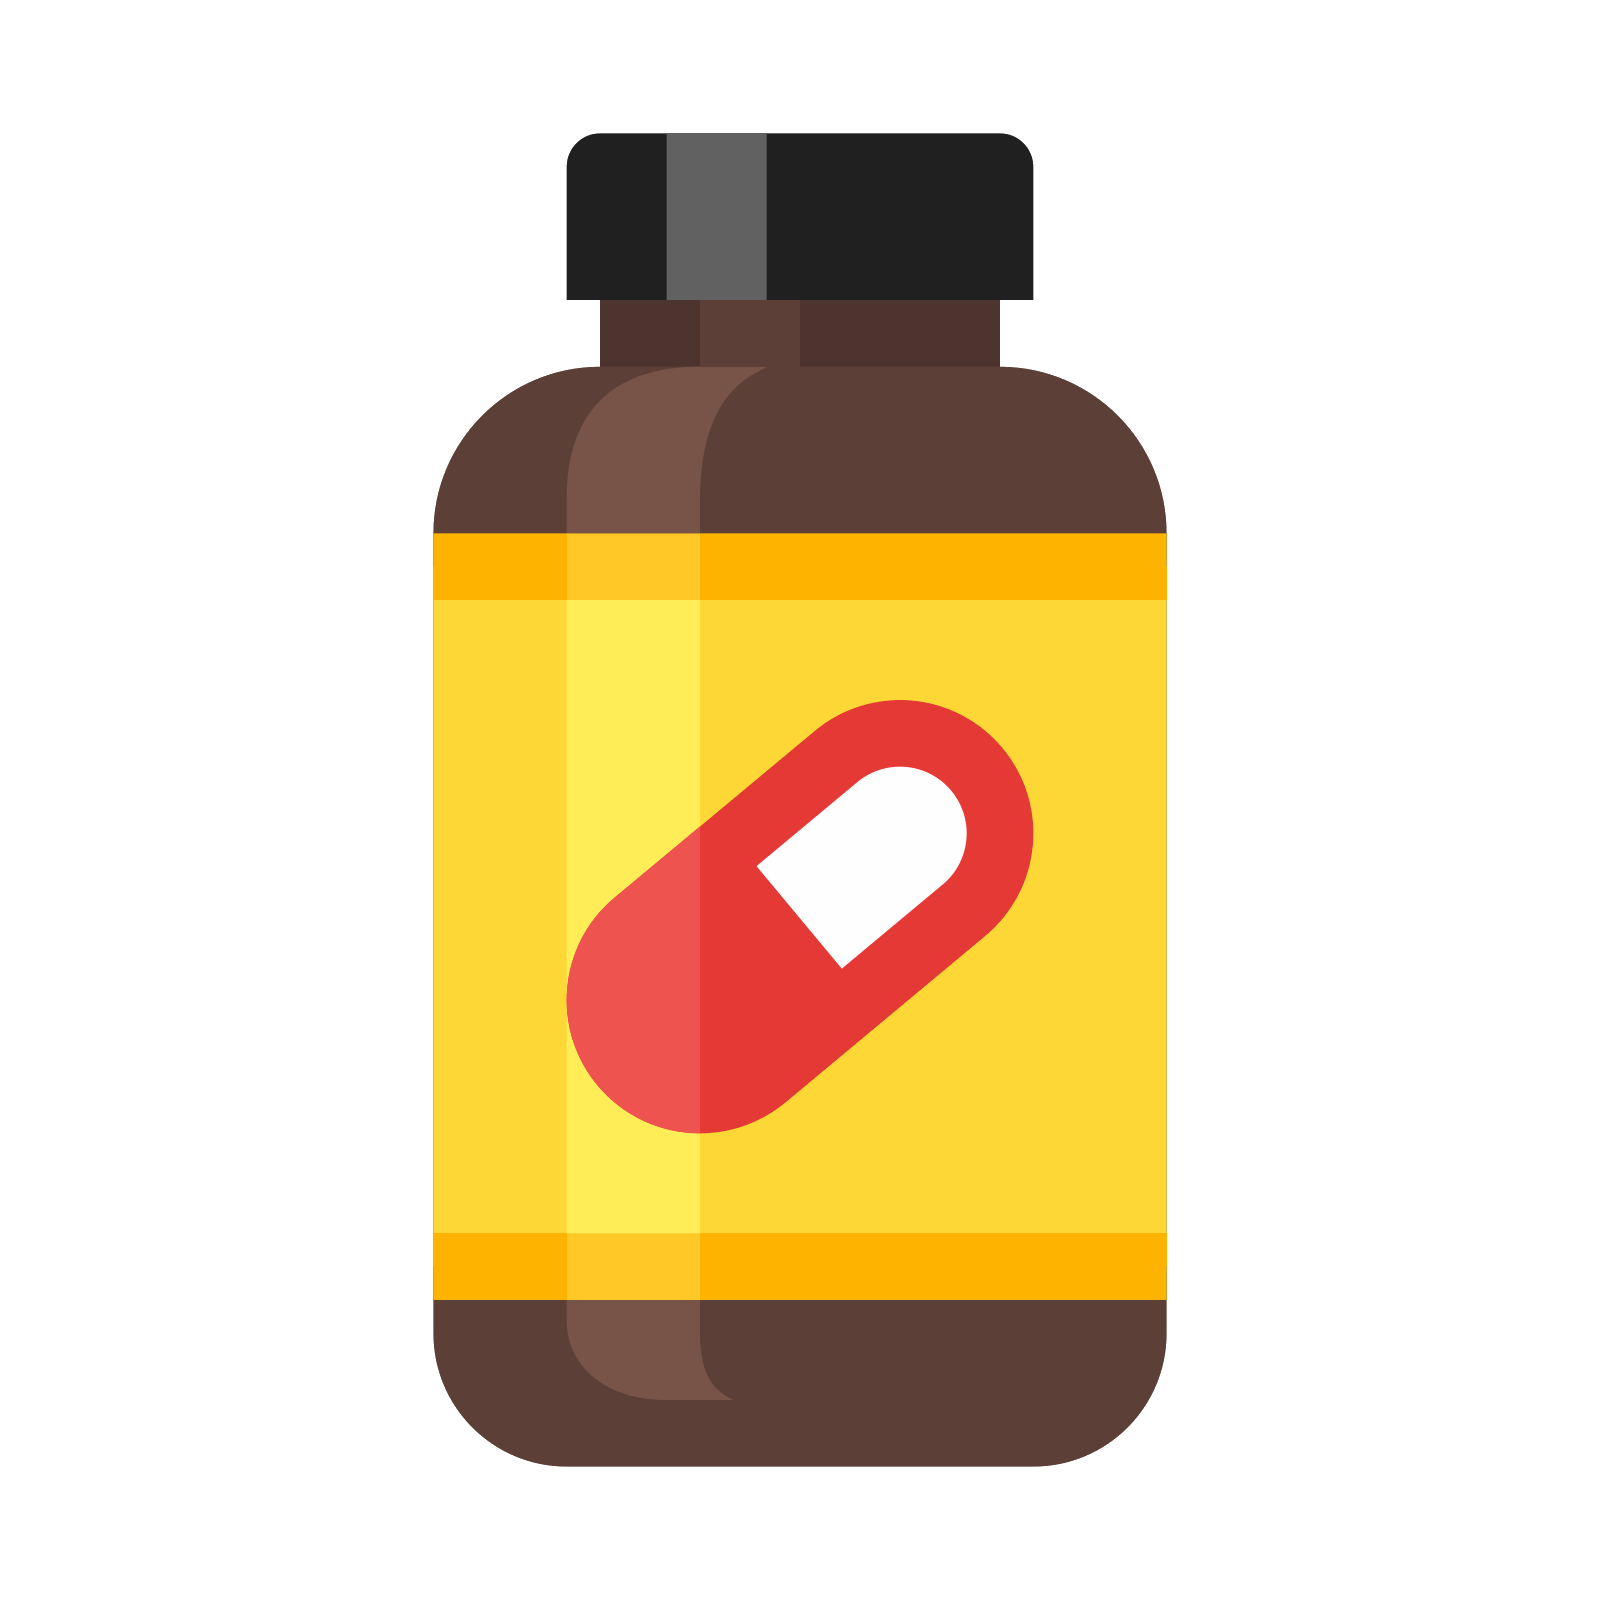 Pill supplement icono descarga. Medicine bottle png